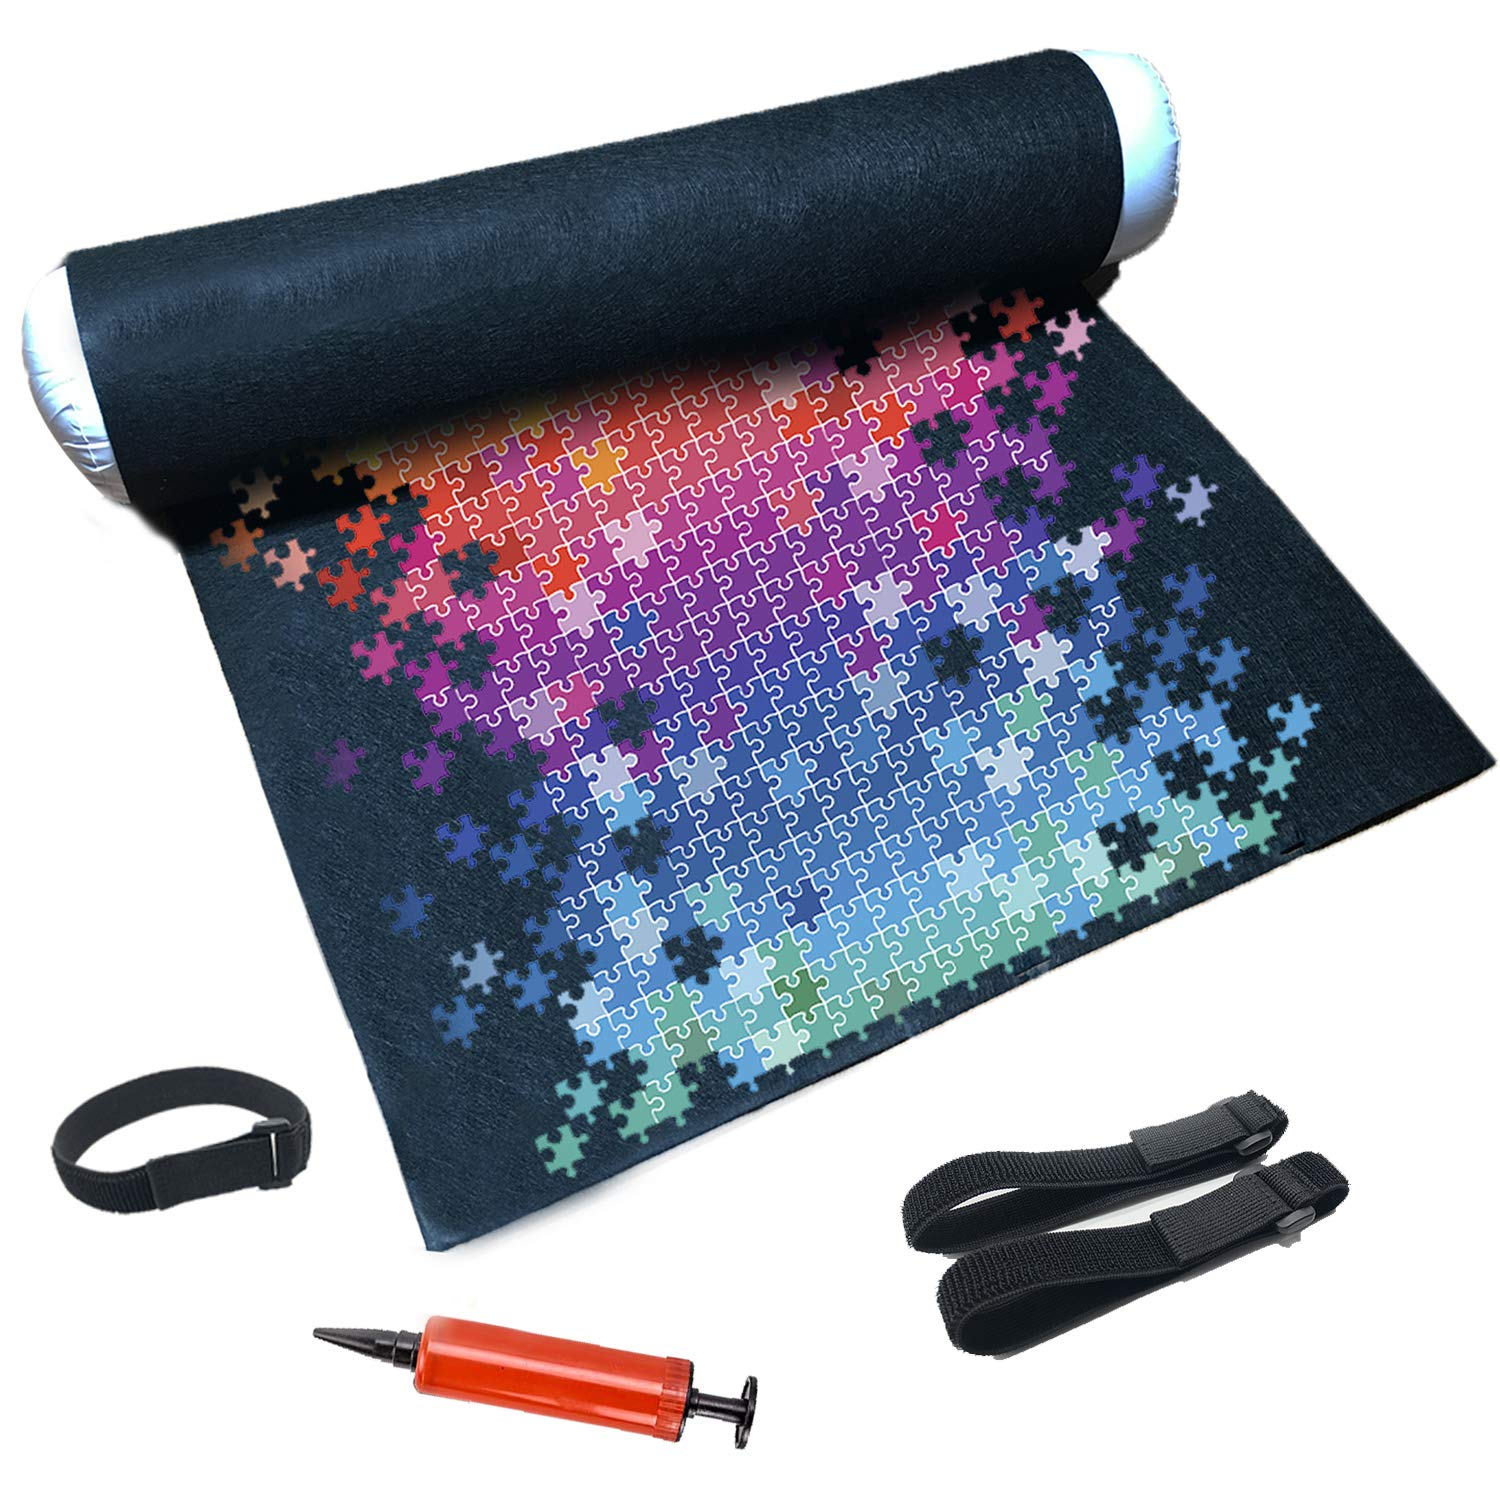 Jigroll Up to 1,500 Pieces Becko Puzzle Roll Jigsaw Storage Felt Mat Environmental Friendly Material for Jigsaw Puzzle Player Box with Drawstring Storage Bag